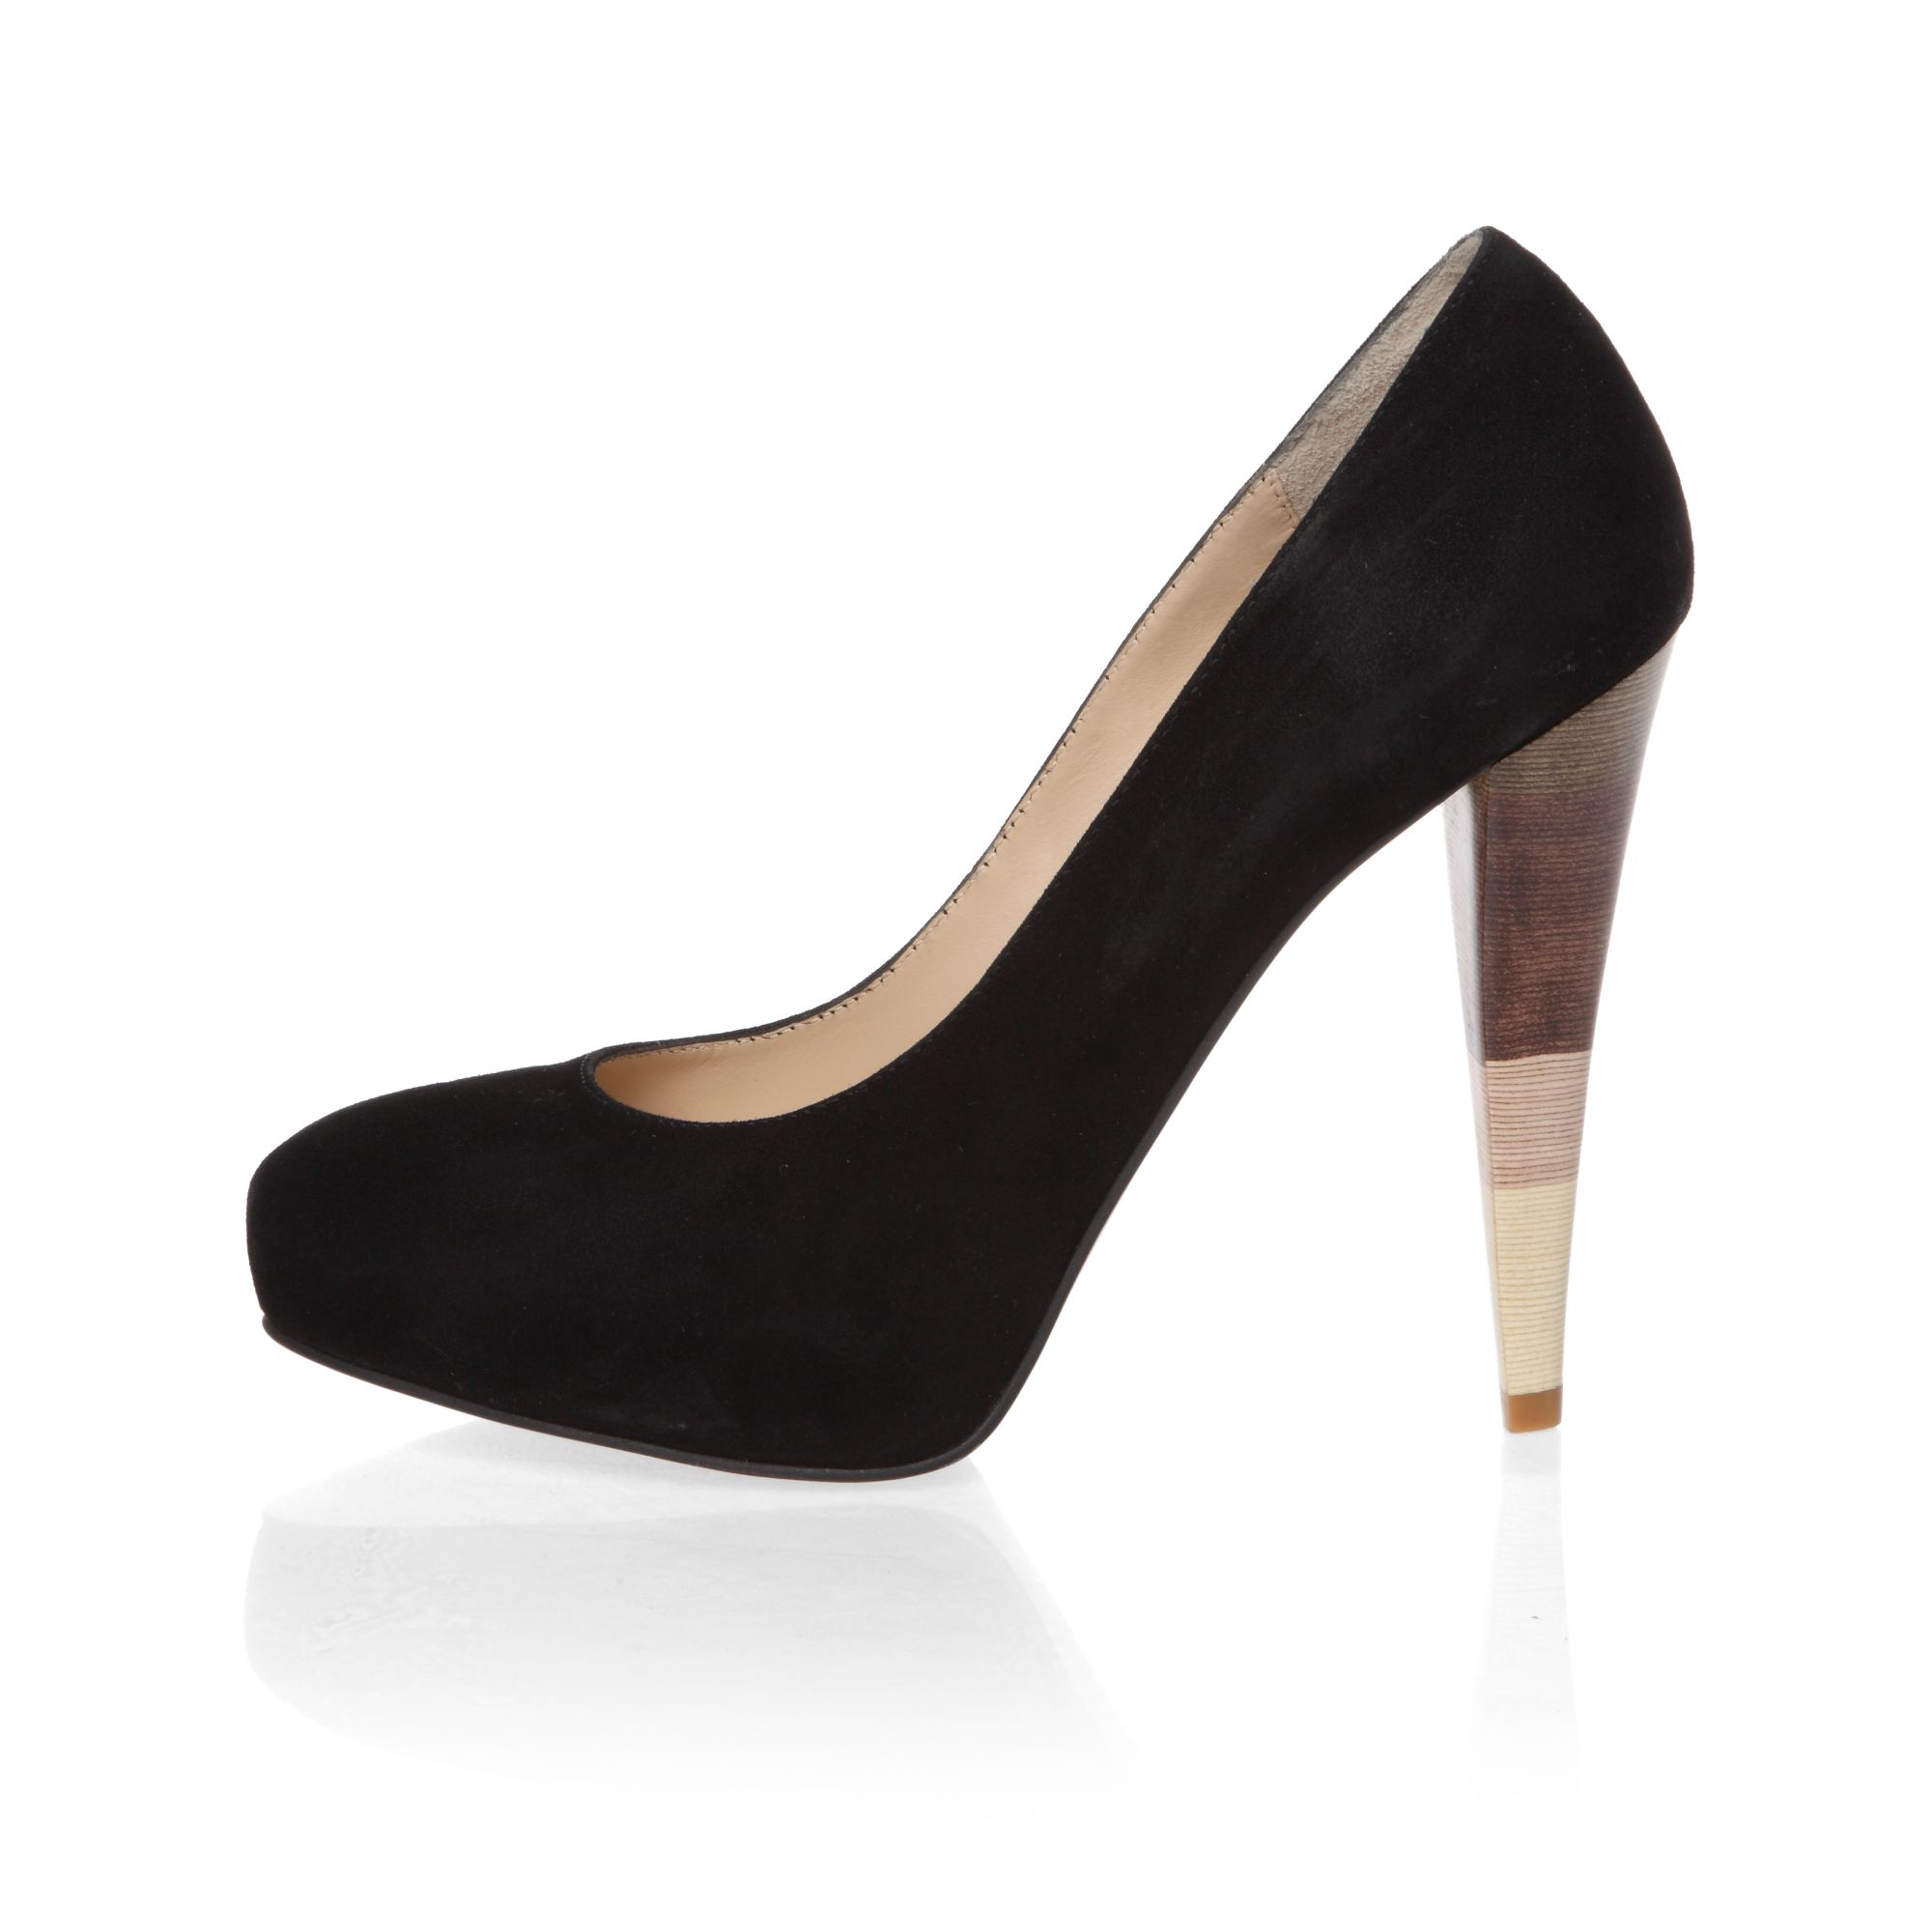 Detailed heeled suede court shoes